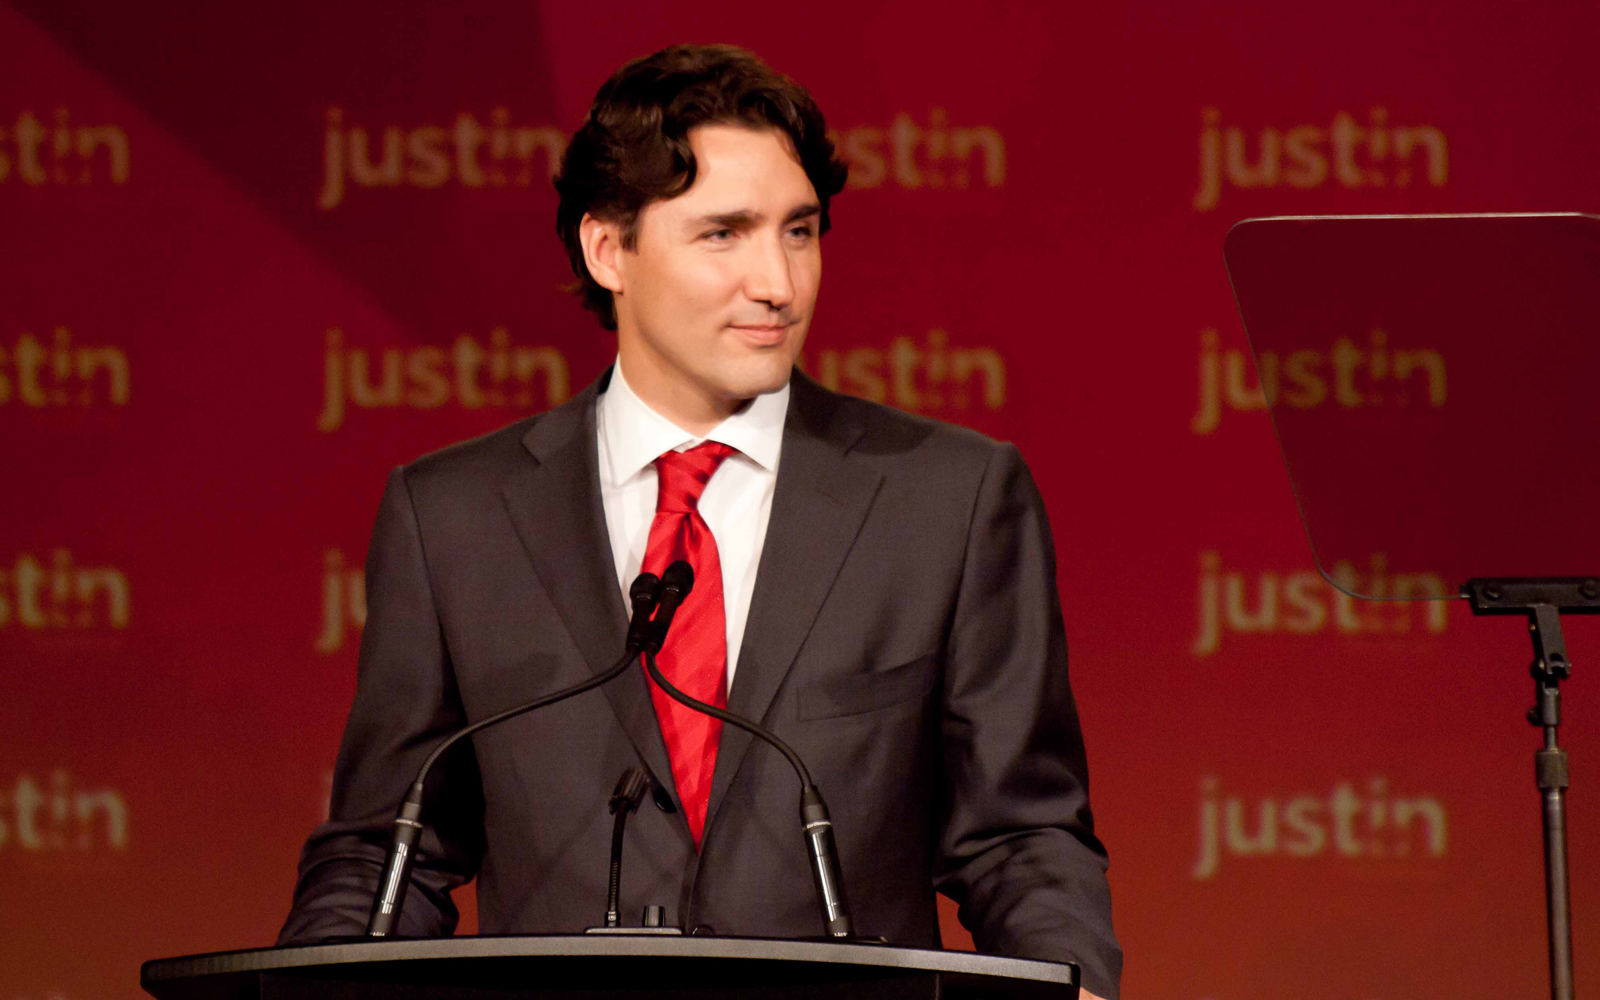 Justin Trudeau Can Now Be Yours—with Just 3 Easy Payments of $32.27